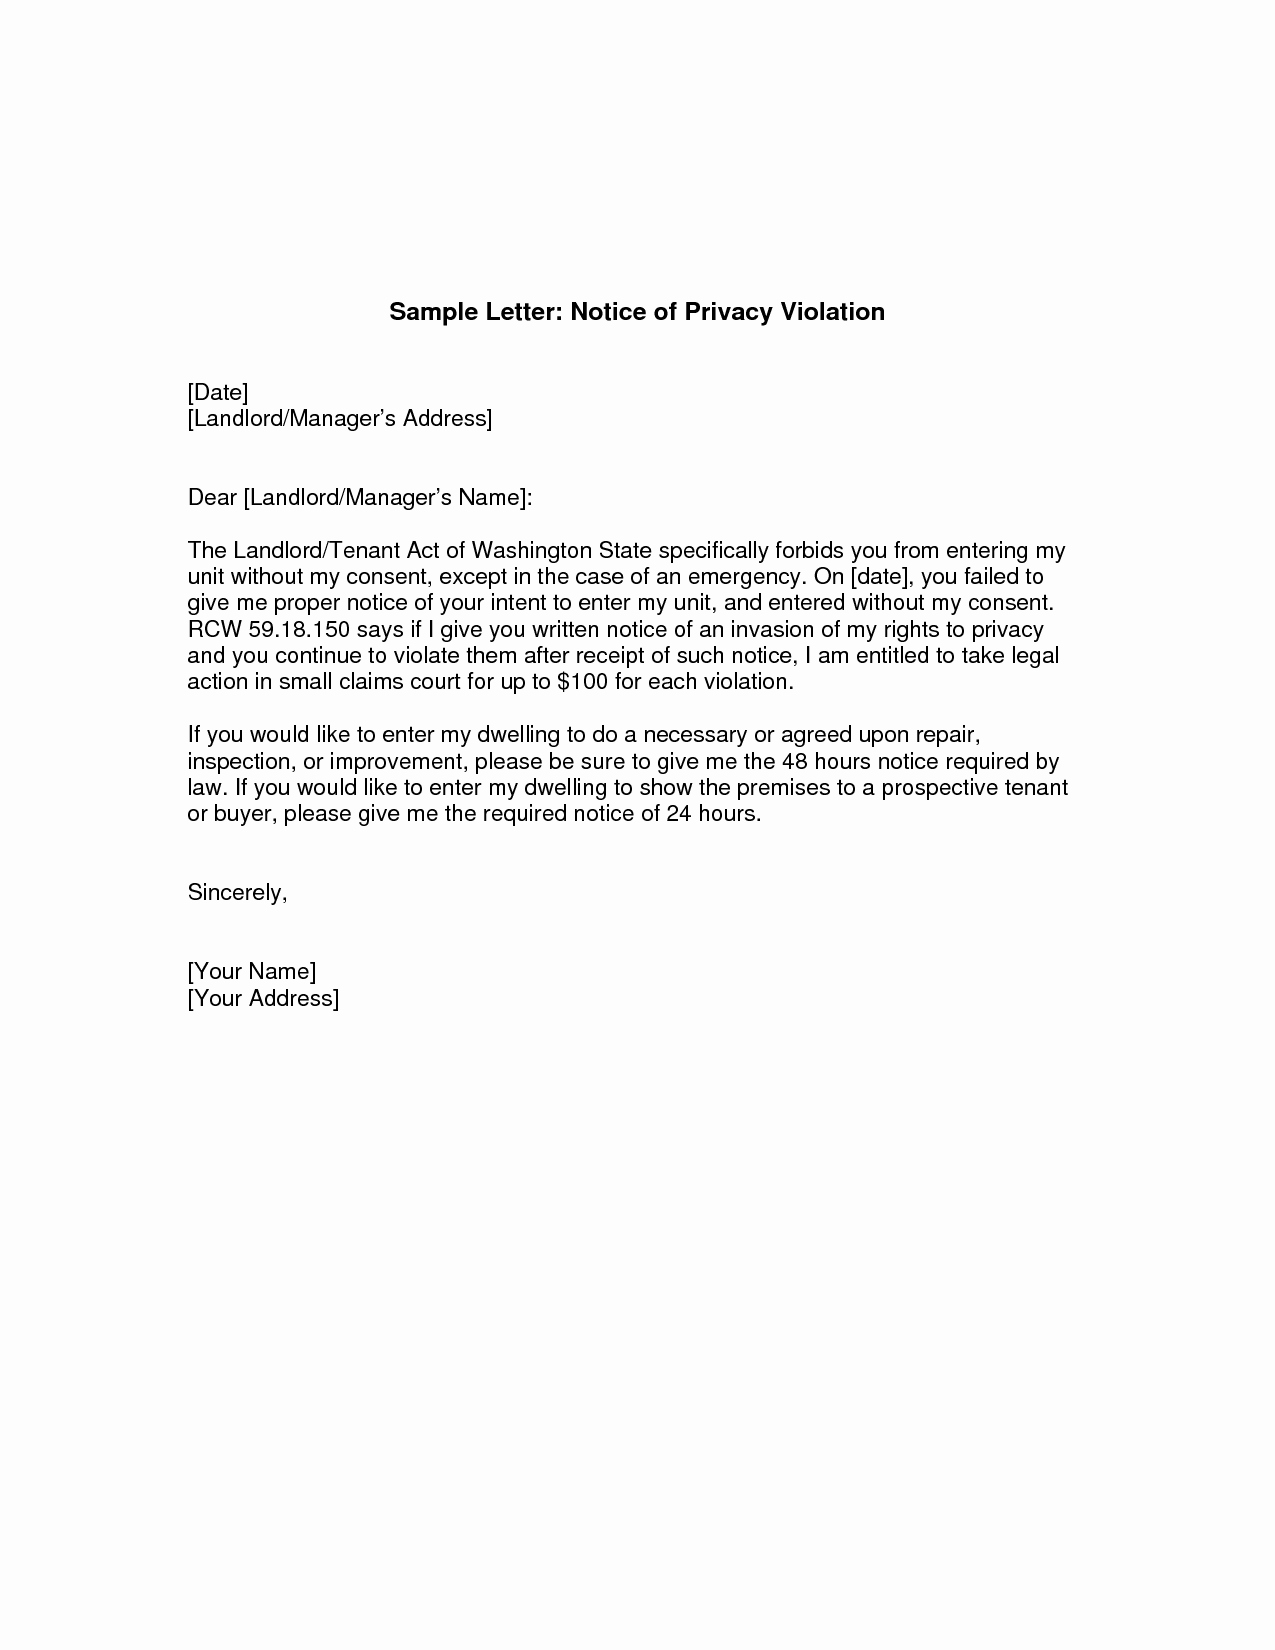 Sample Landlord Letters to Tenants Beautiful Giving Notice to Landlord Letter Tenant Notice to End